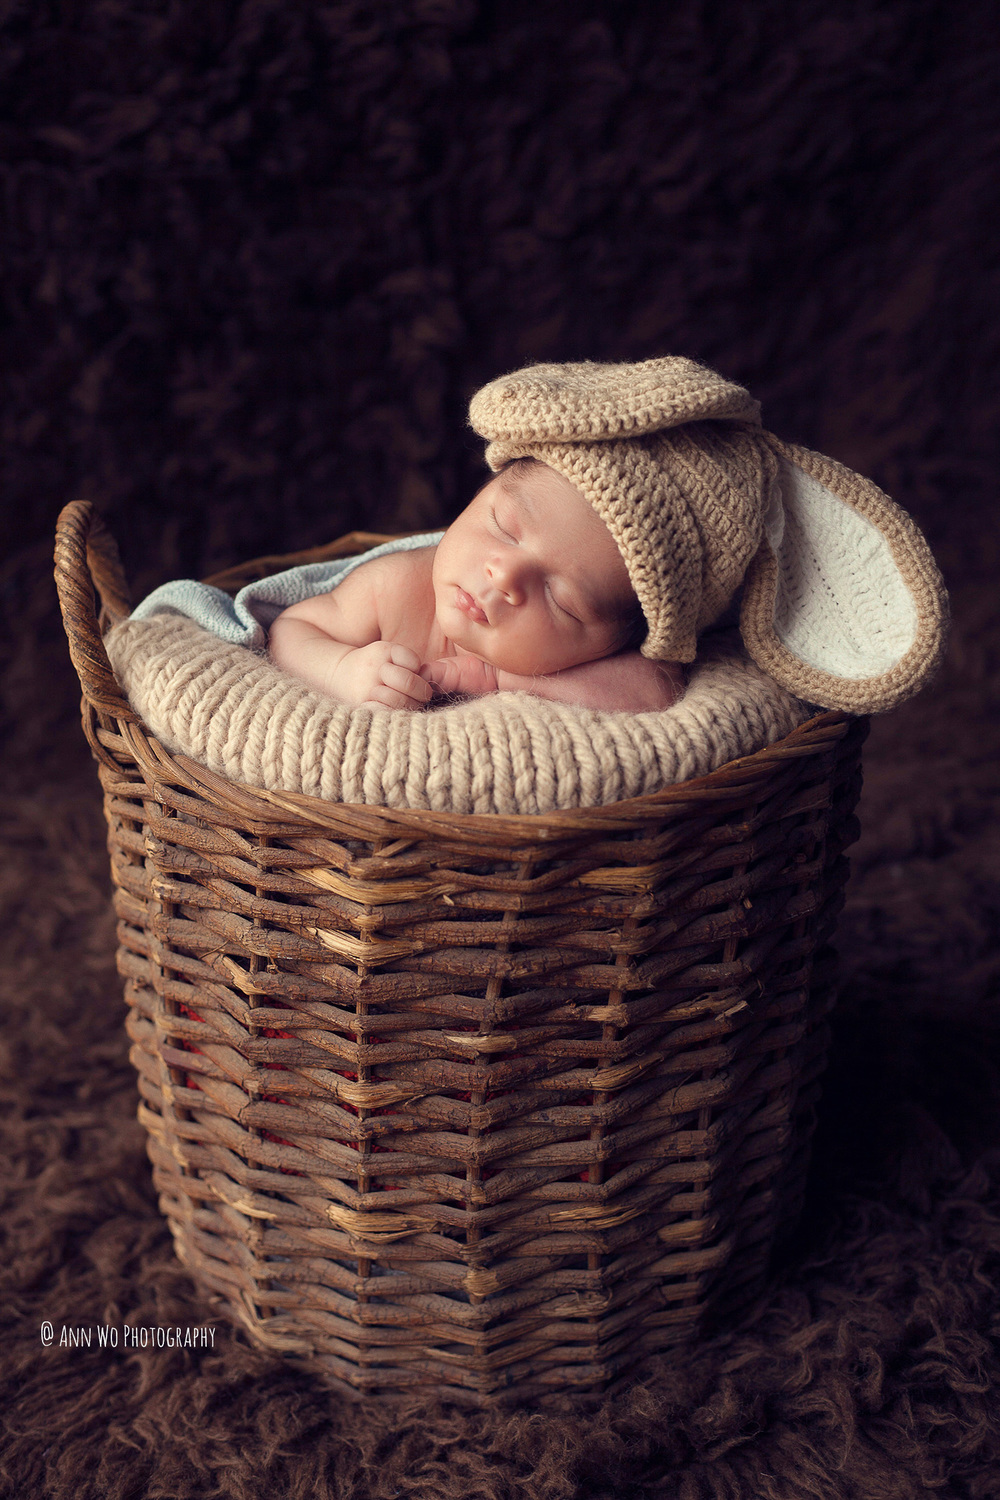 newborn photographer london ann wo13.jpg